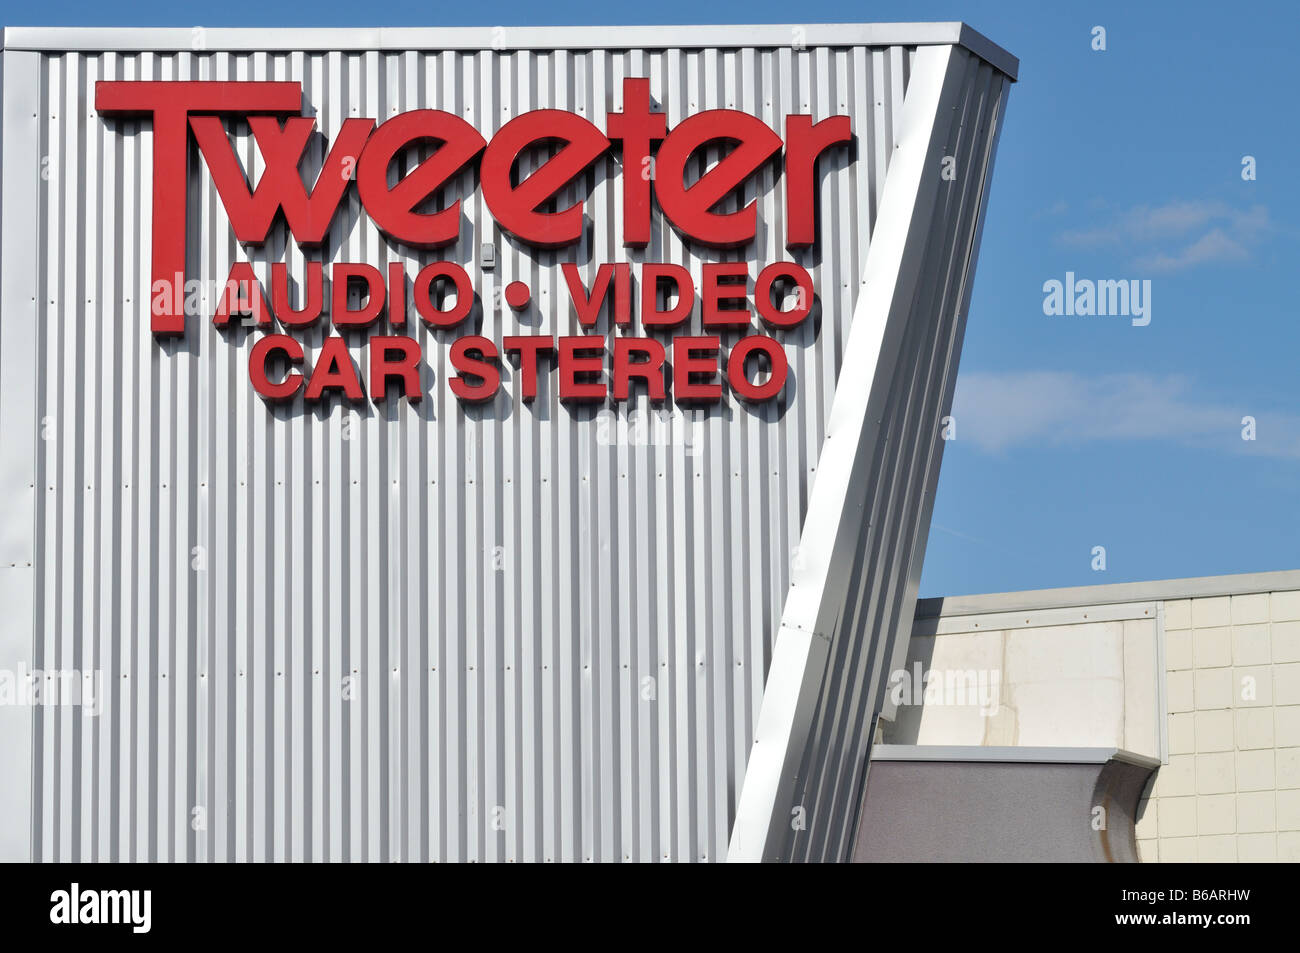 Tweeter store sign on building exterior. - Stock Image